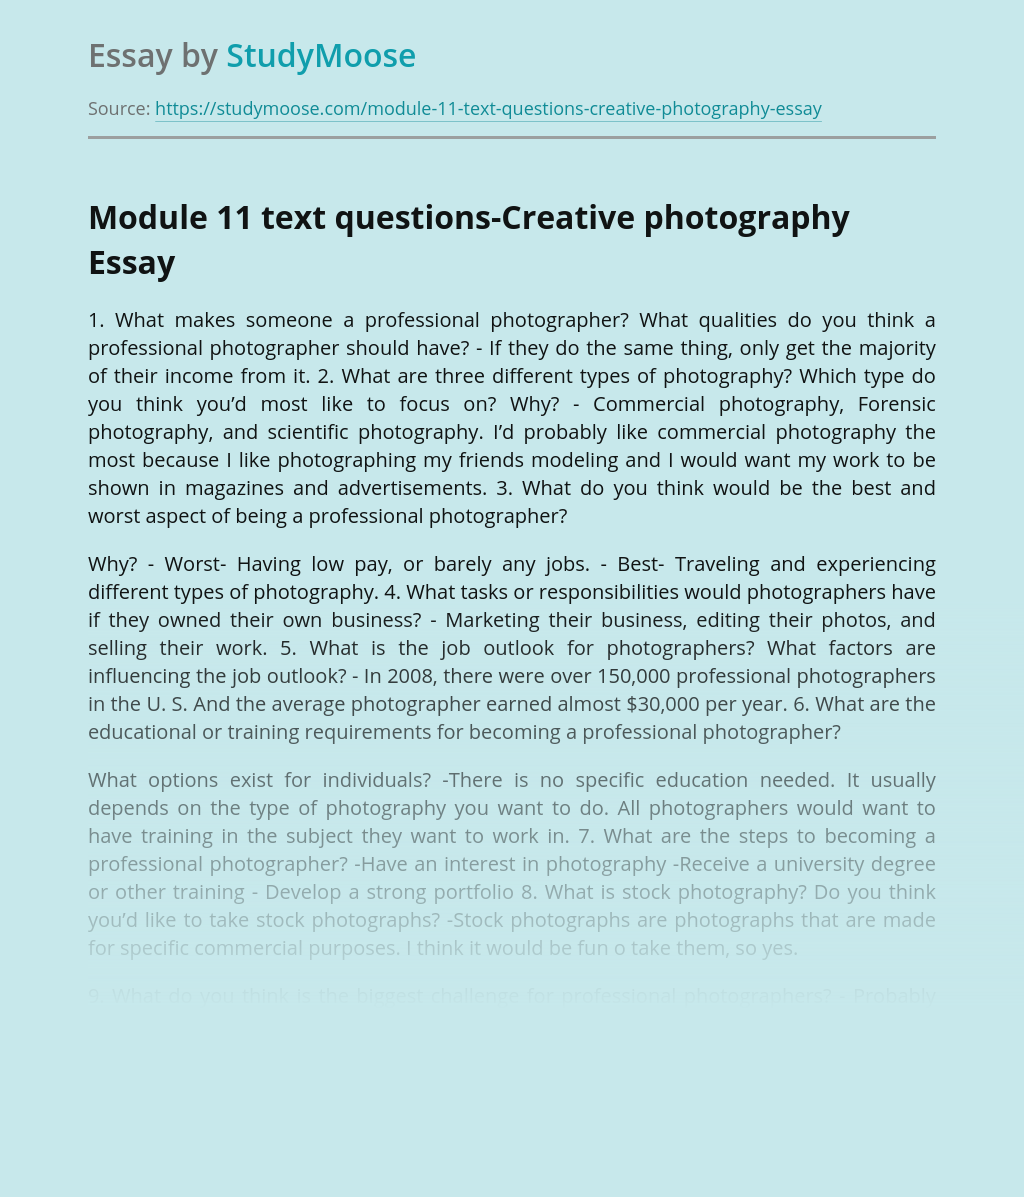 Module 11 text questions-Creative photography